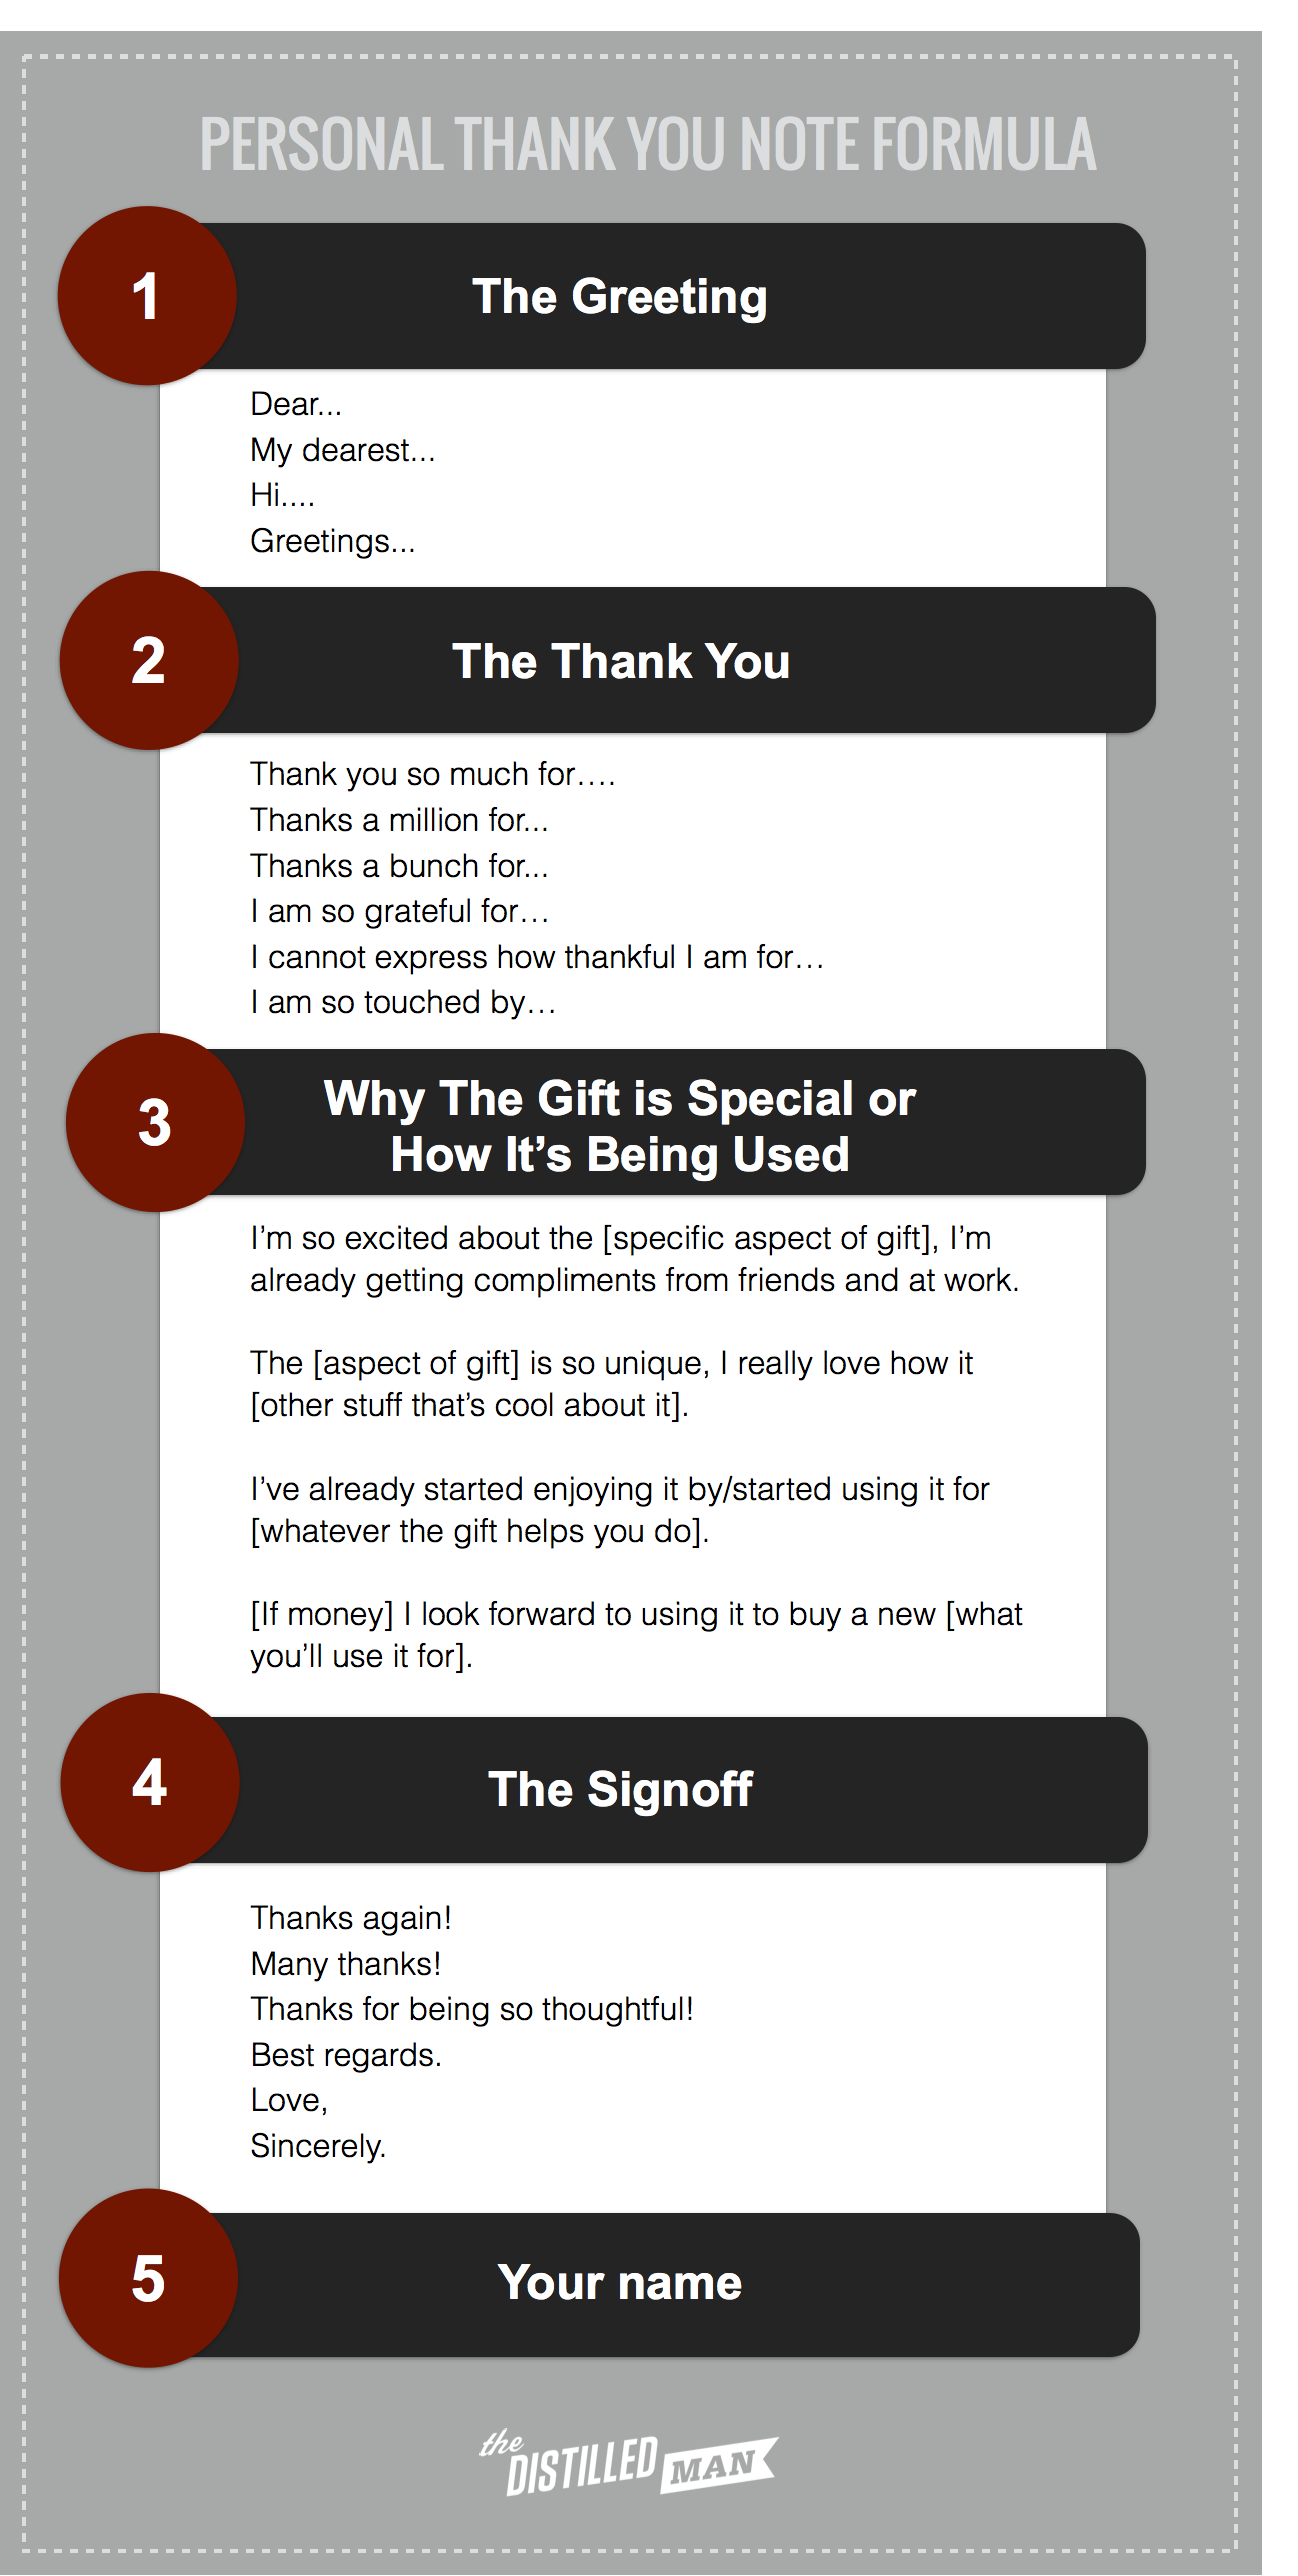 The Simple 5 Part Thank You Note Formula Includes: The Greeting, The Thank